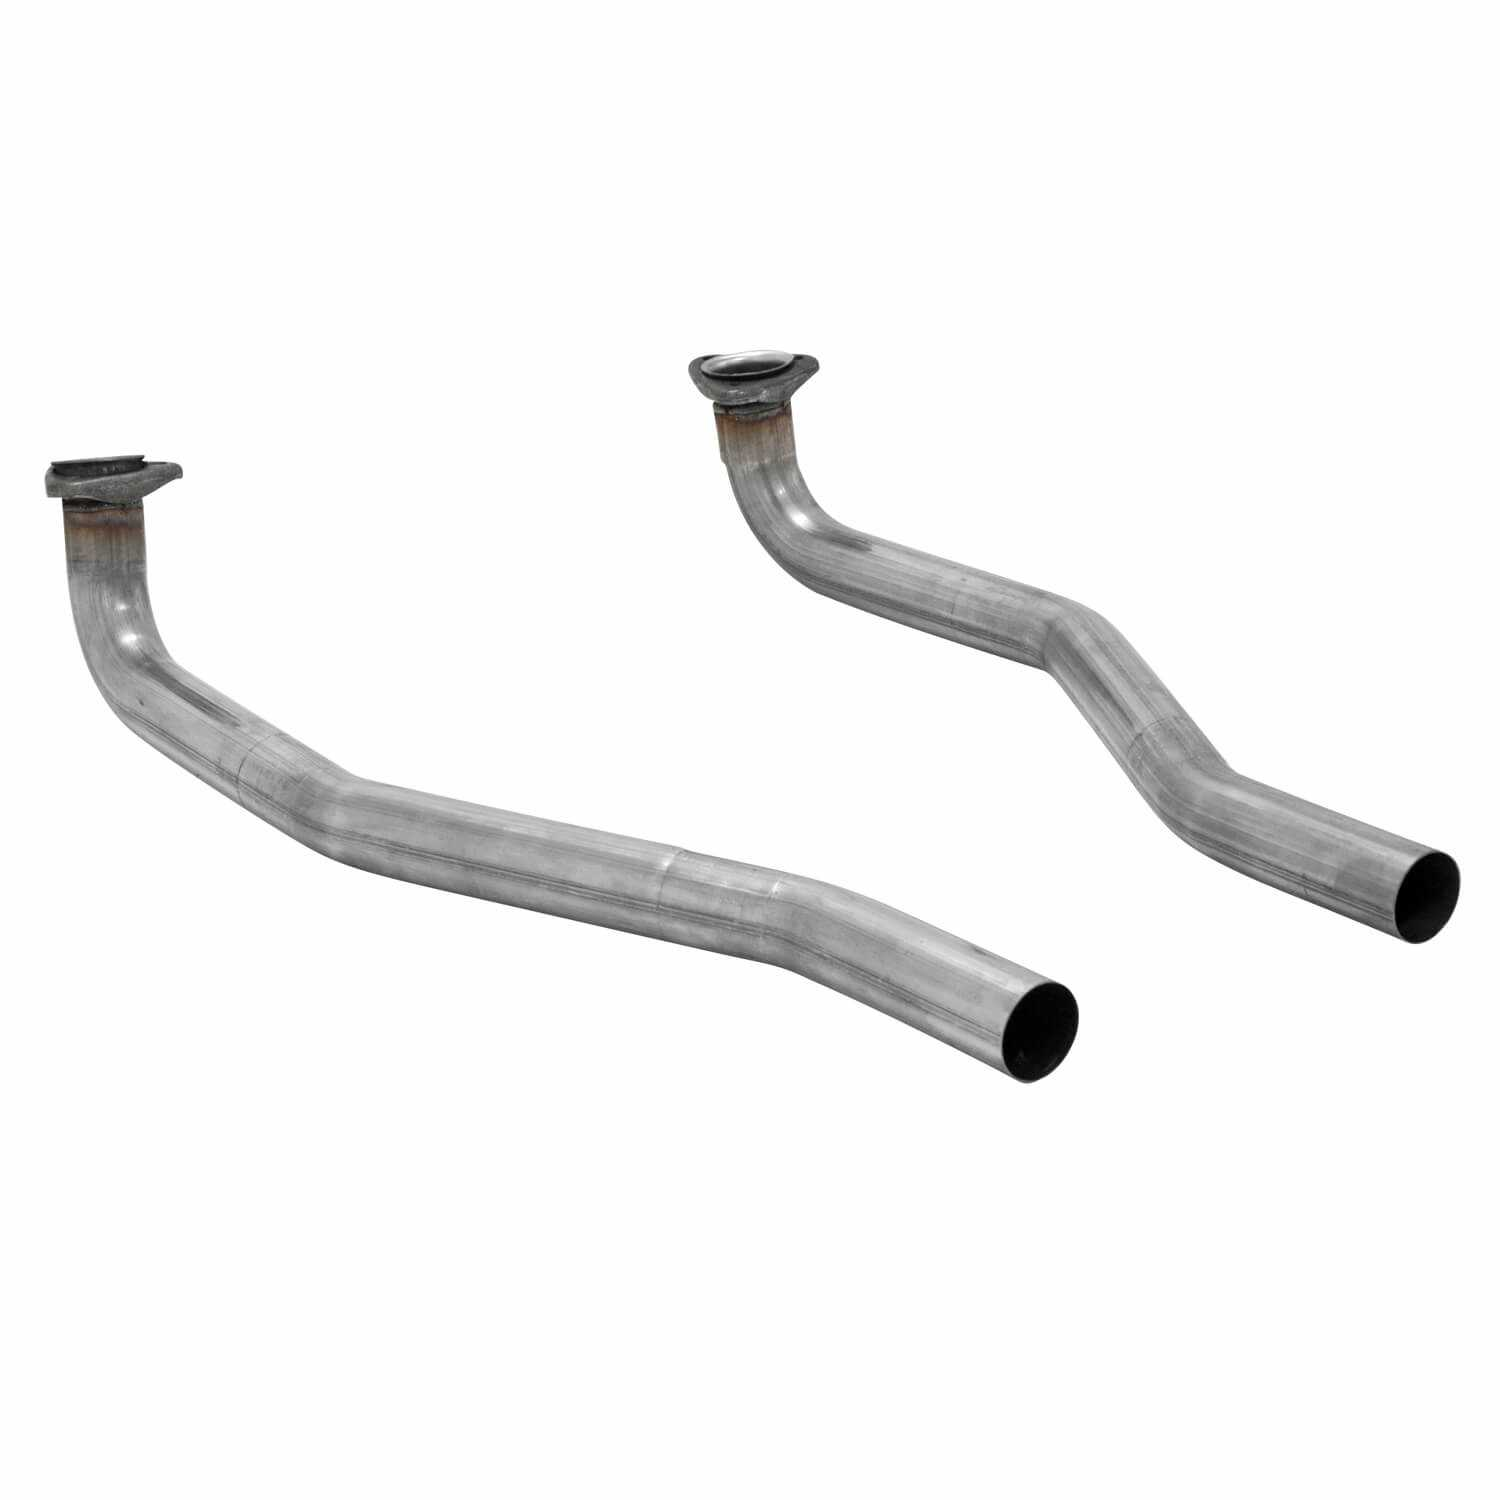 81075 Flowmaster Manifold Downpipe Kit